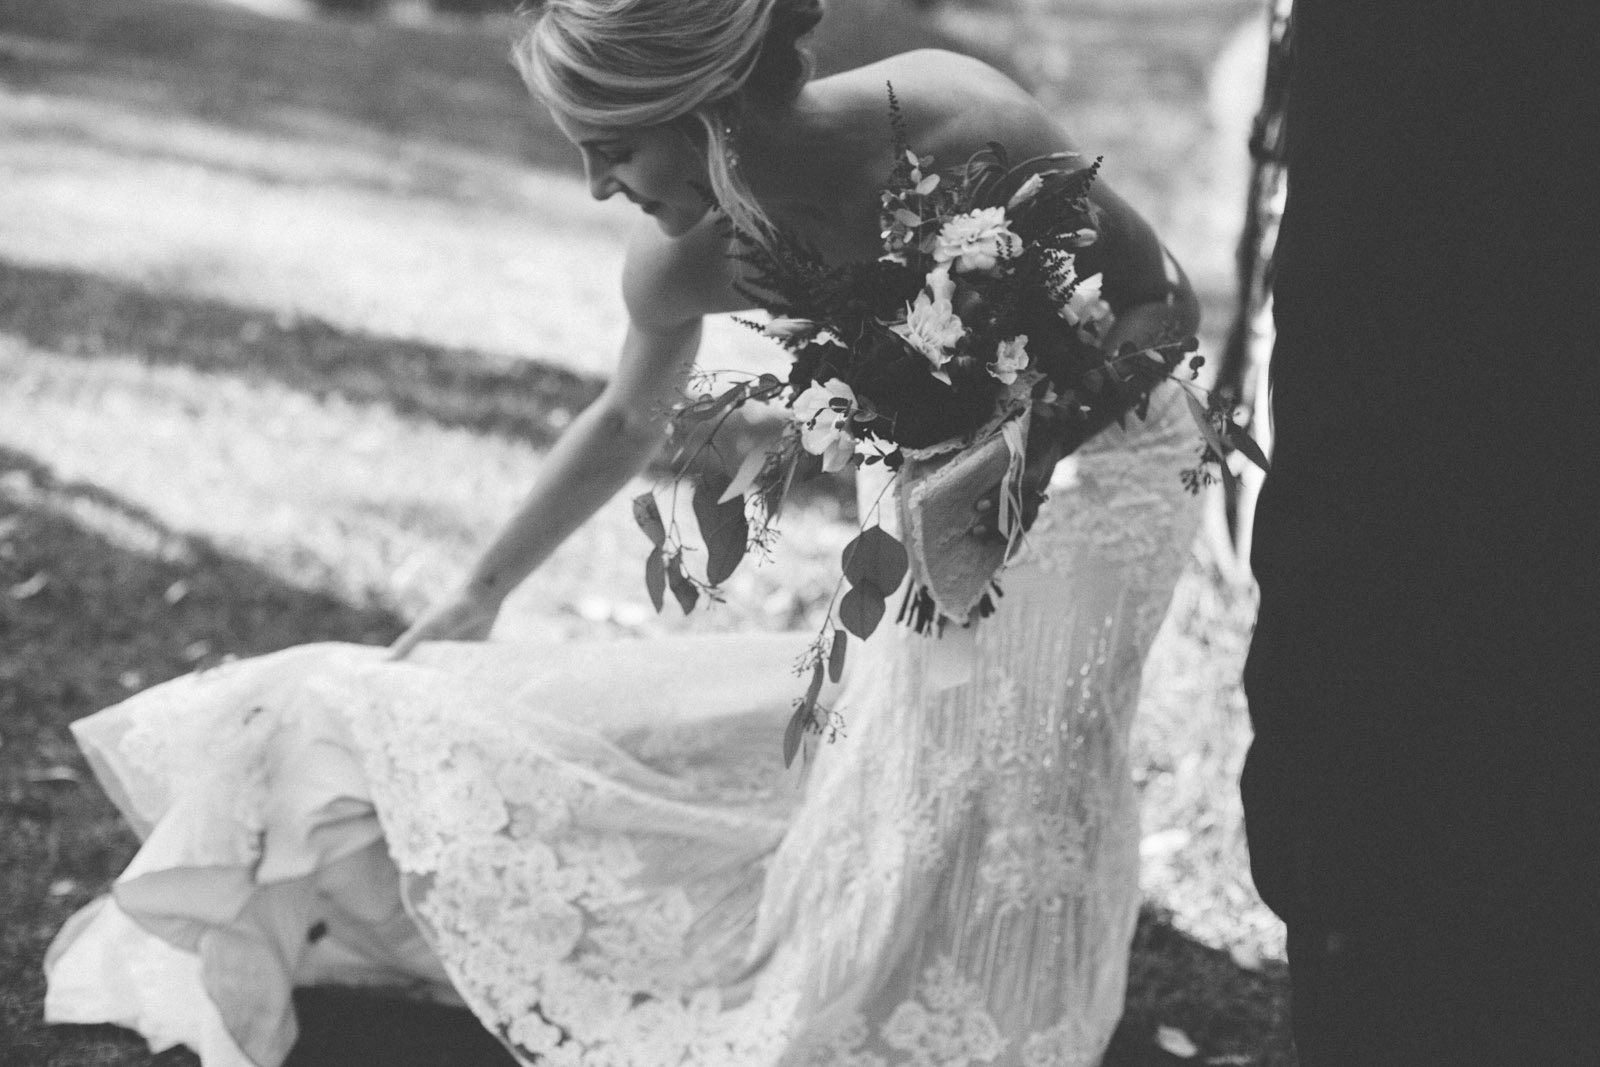 bride picking up her dress in aisle at grooms feet